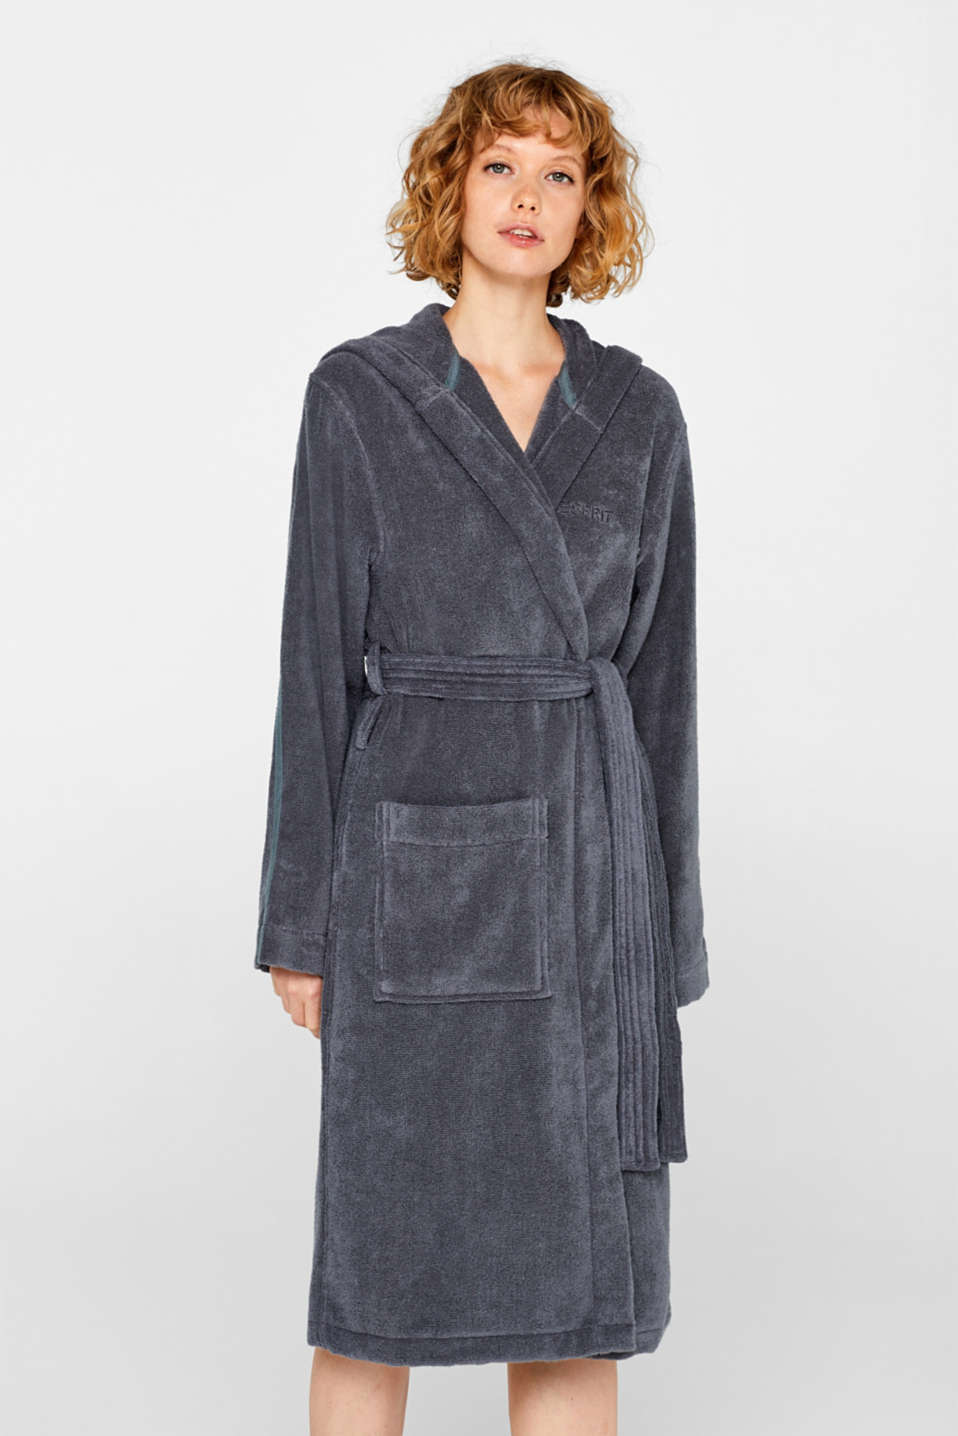 Unisex bathrobe made of 100% cotton, GREY STEEL, detail image number 1